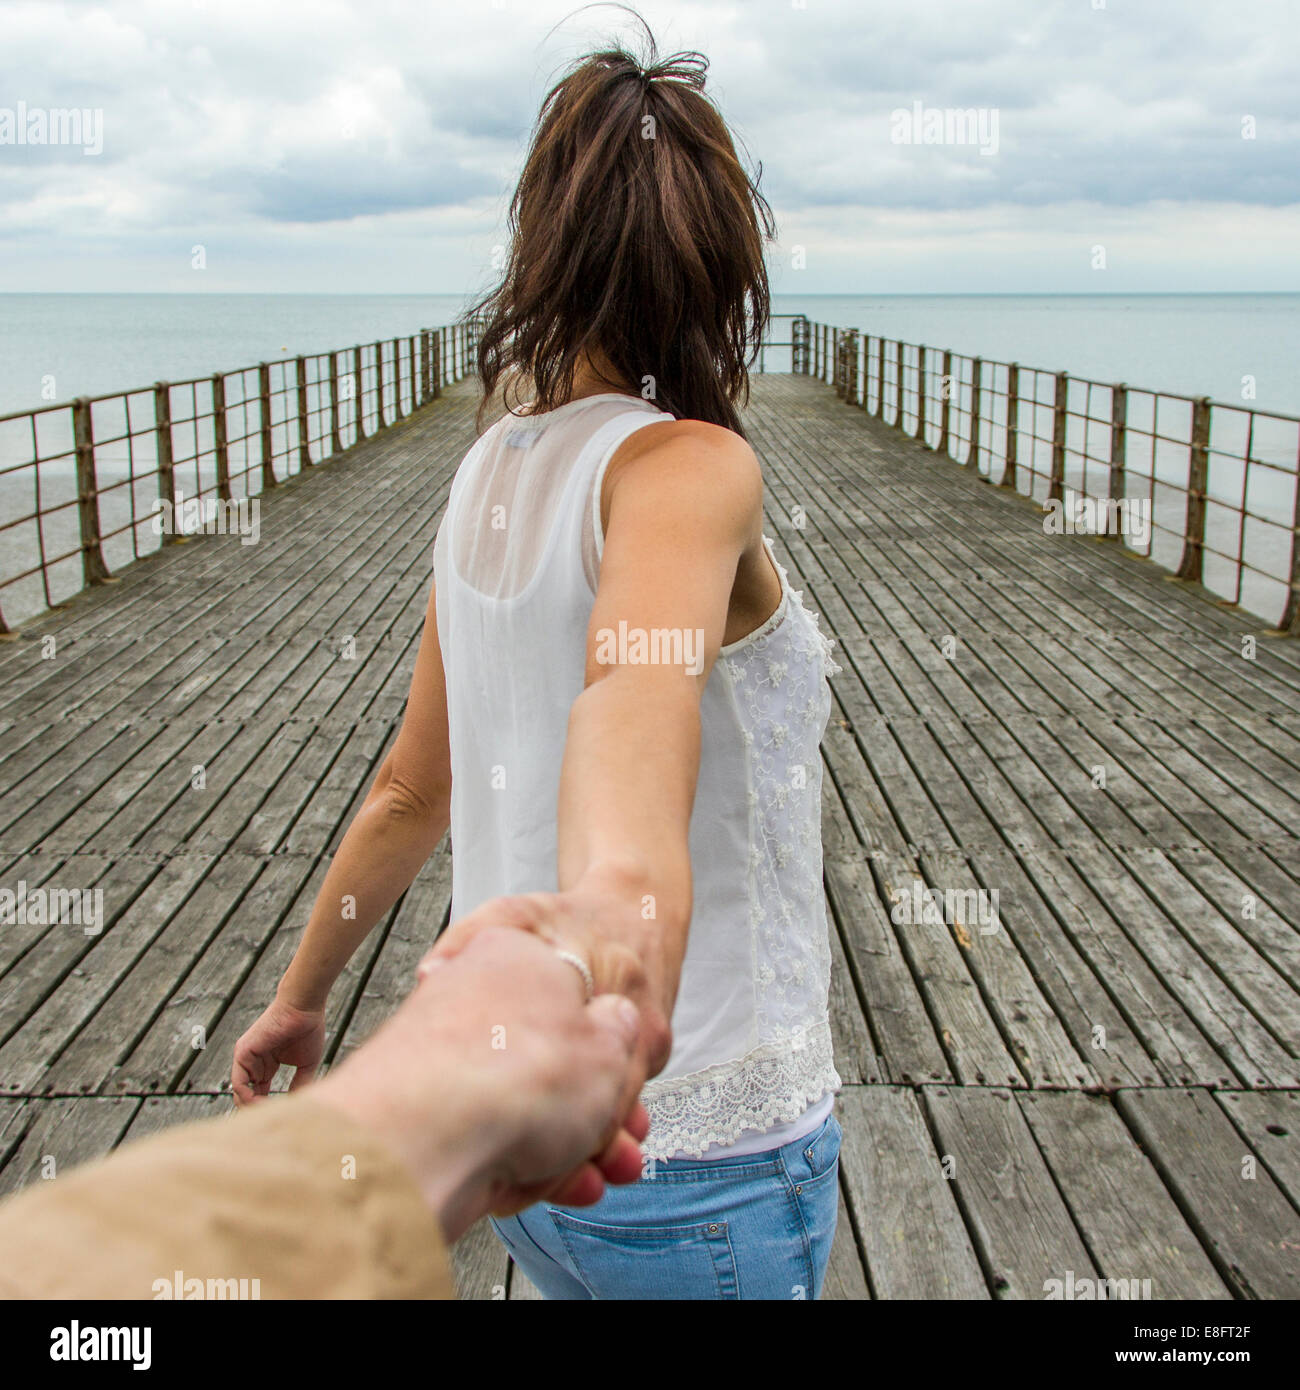 UK, Woman holing man's hand on pier - Stock Image